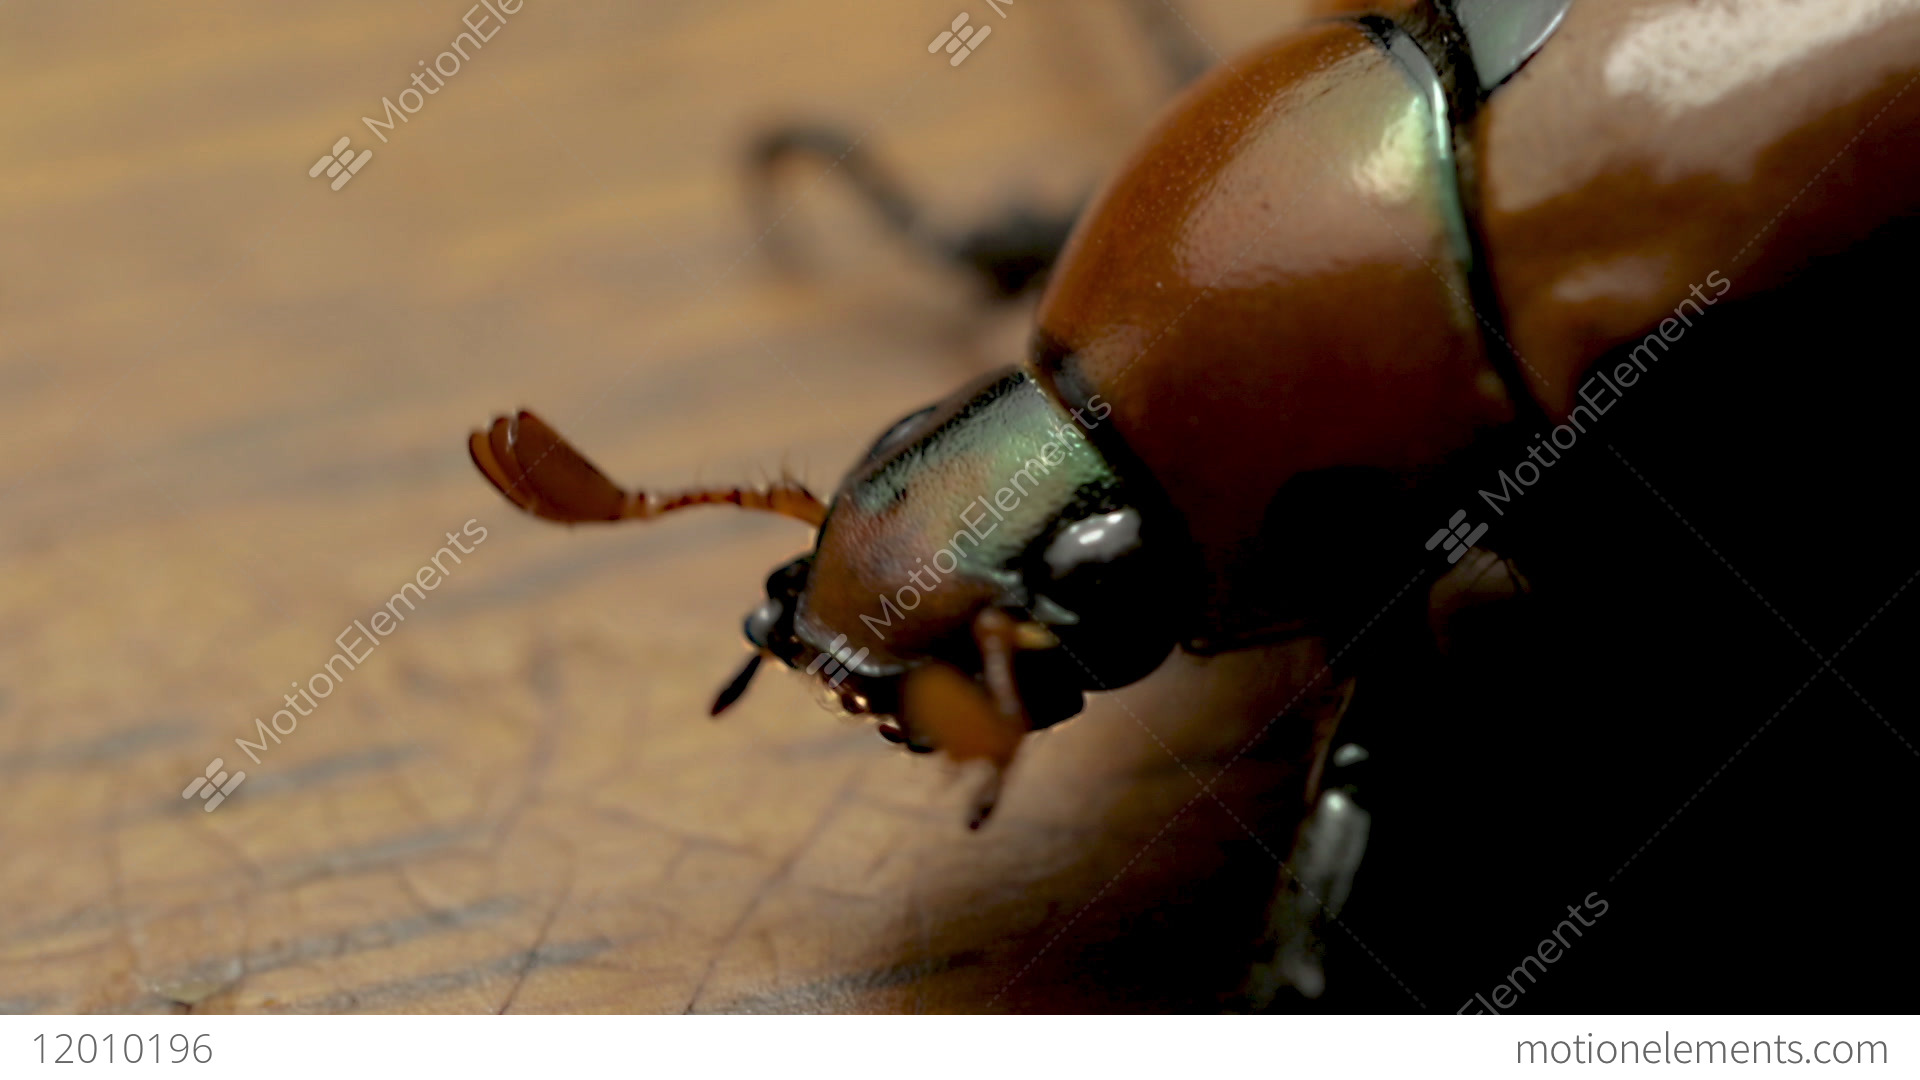 June Beetle: Pest, after whom the cocktail was named 73